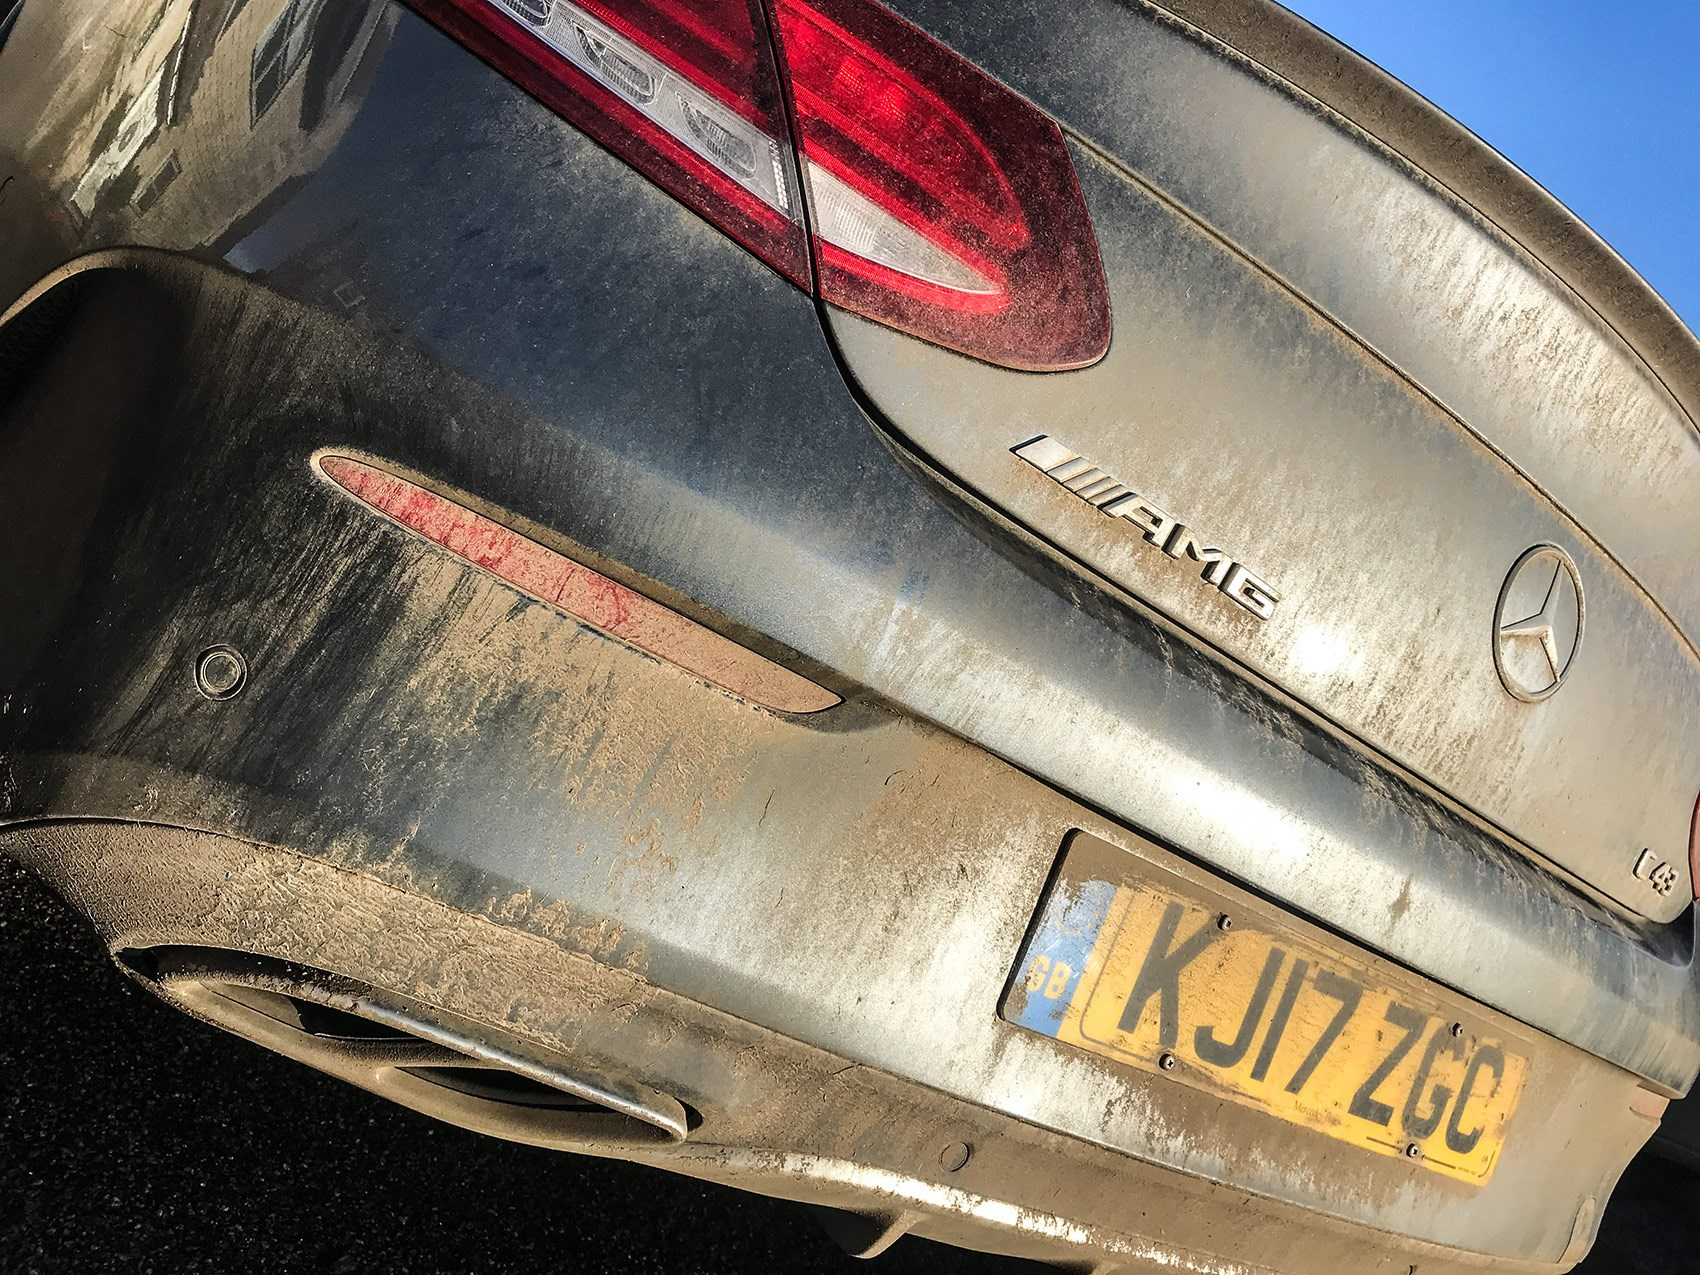 Detroit Motor Show 2016 Review By Phil Mcnamara Car Magazine Under The Hood On Driver S Side Of Vehicle See Diagram Below Frankly Winter Muck Our C43 Coupes 4wd Comes In Handy When Going Gets Muddy